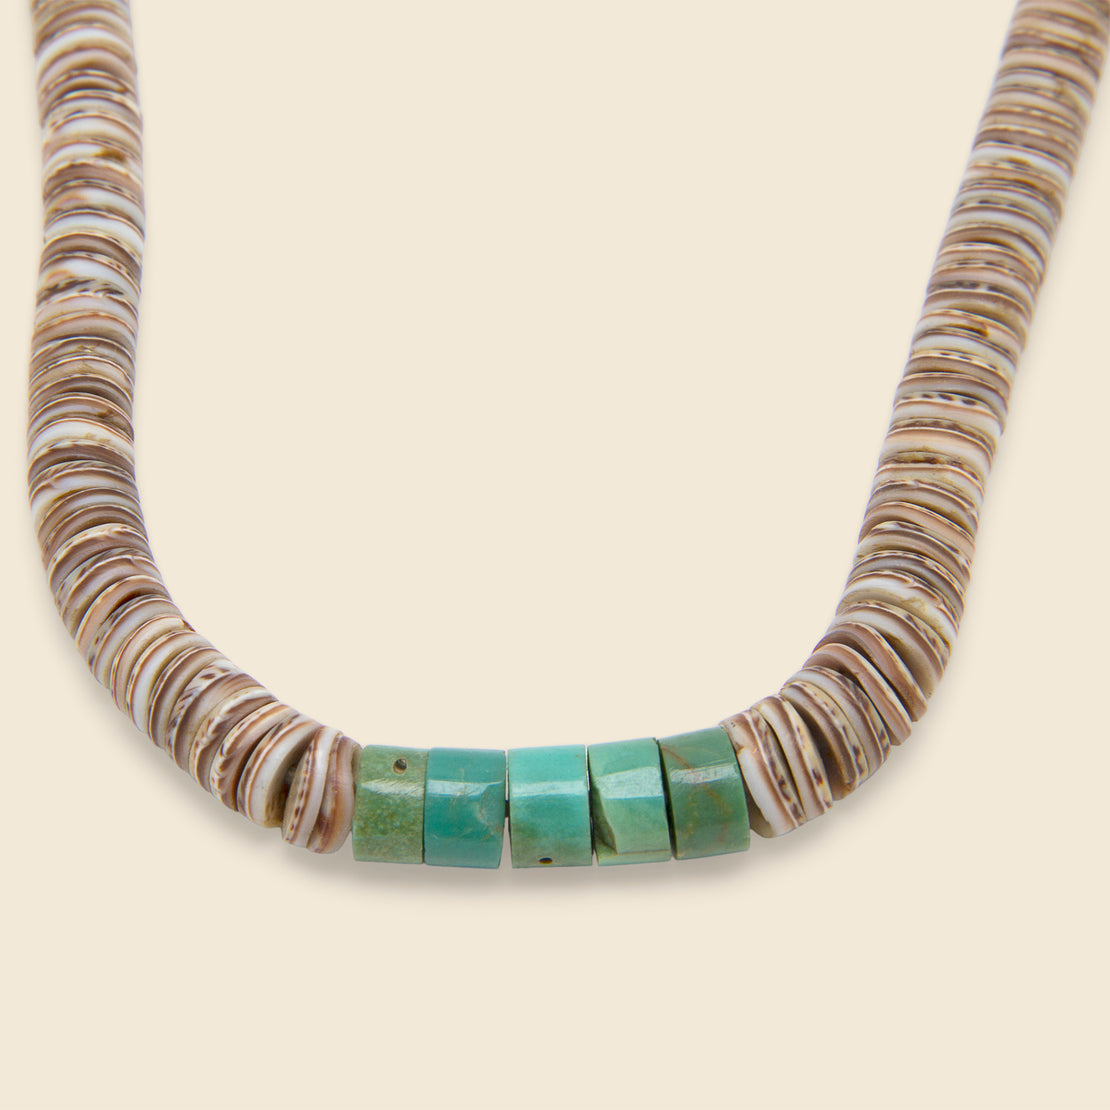 Heishe Necklace - Turquoise & Pin Shell